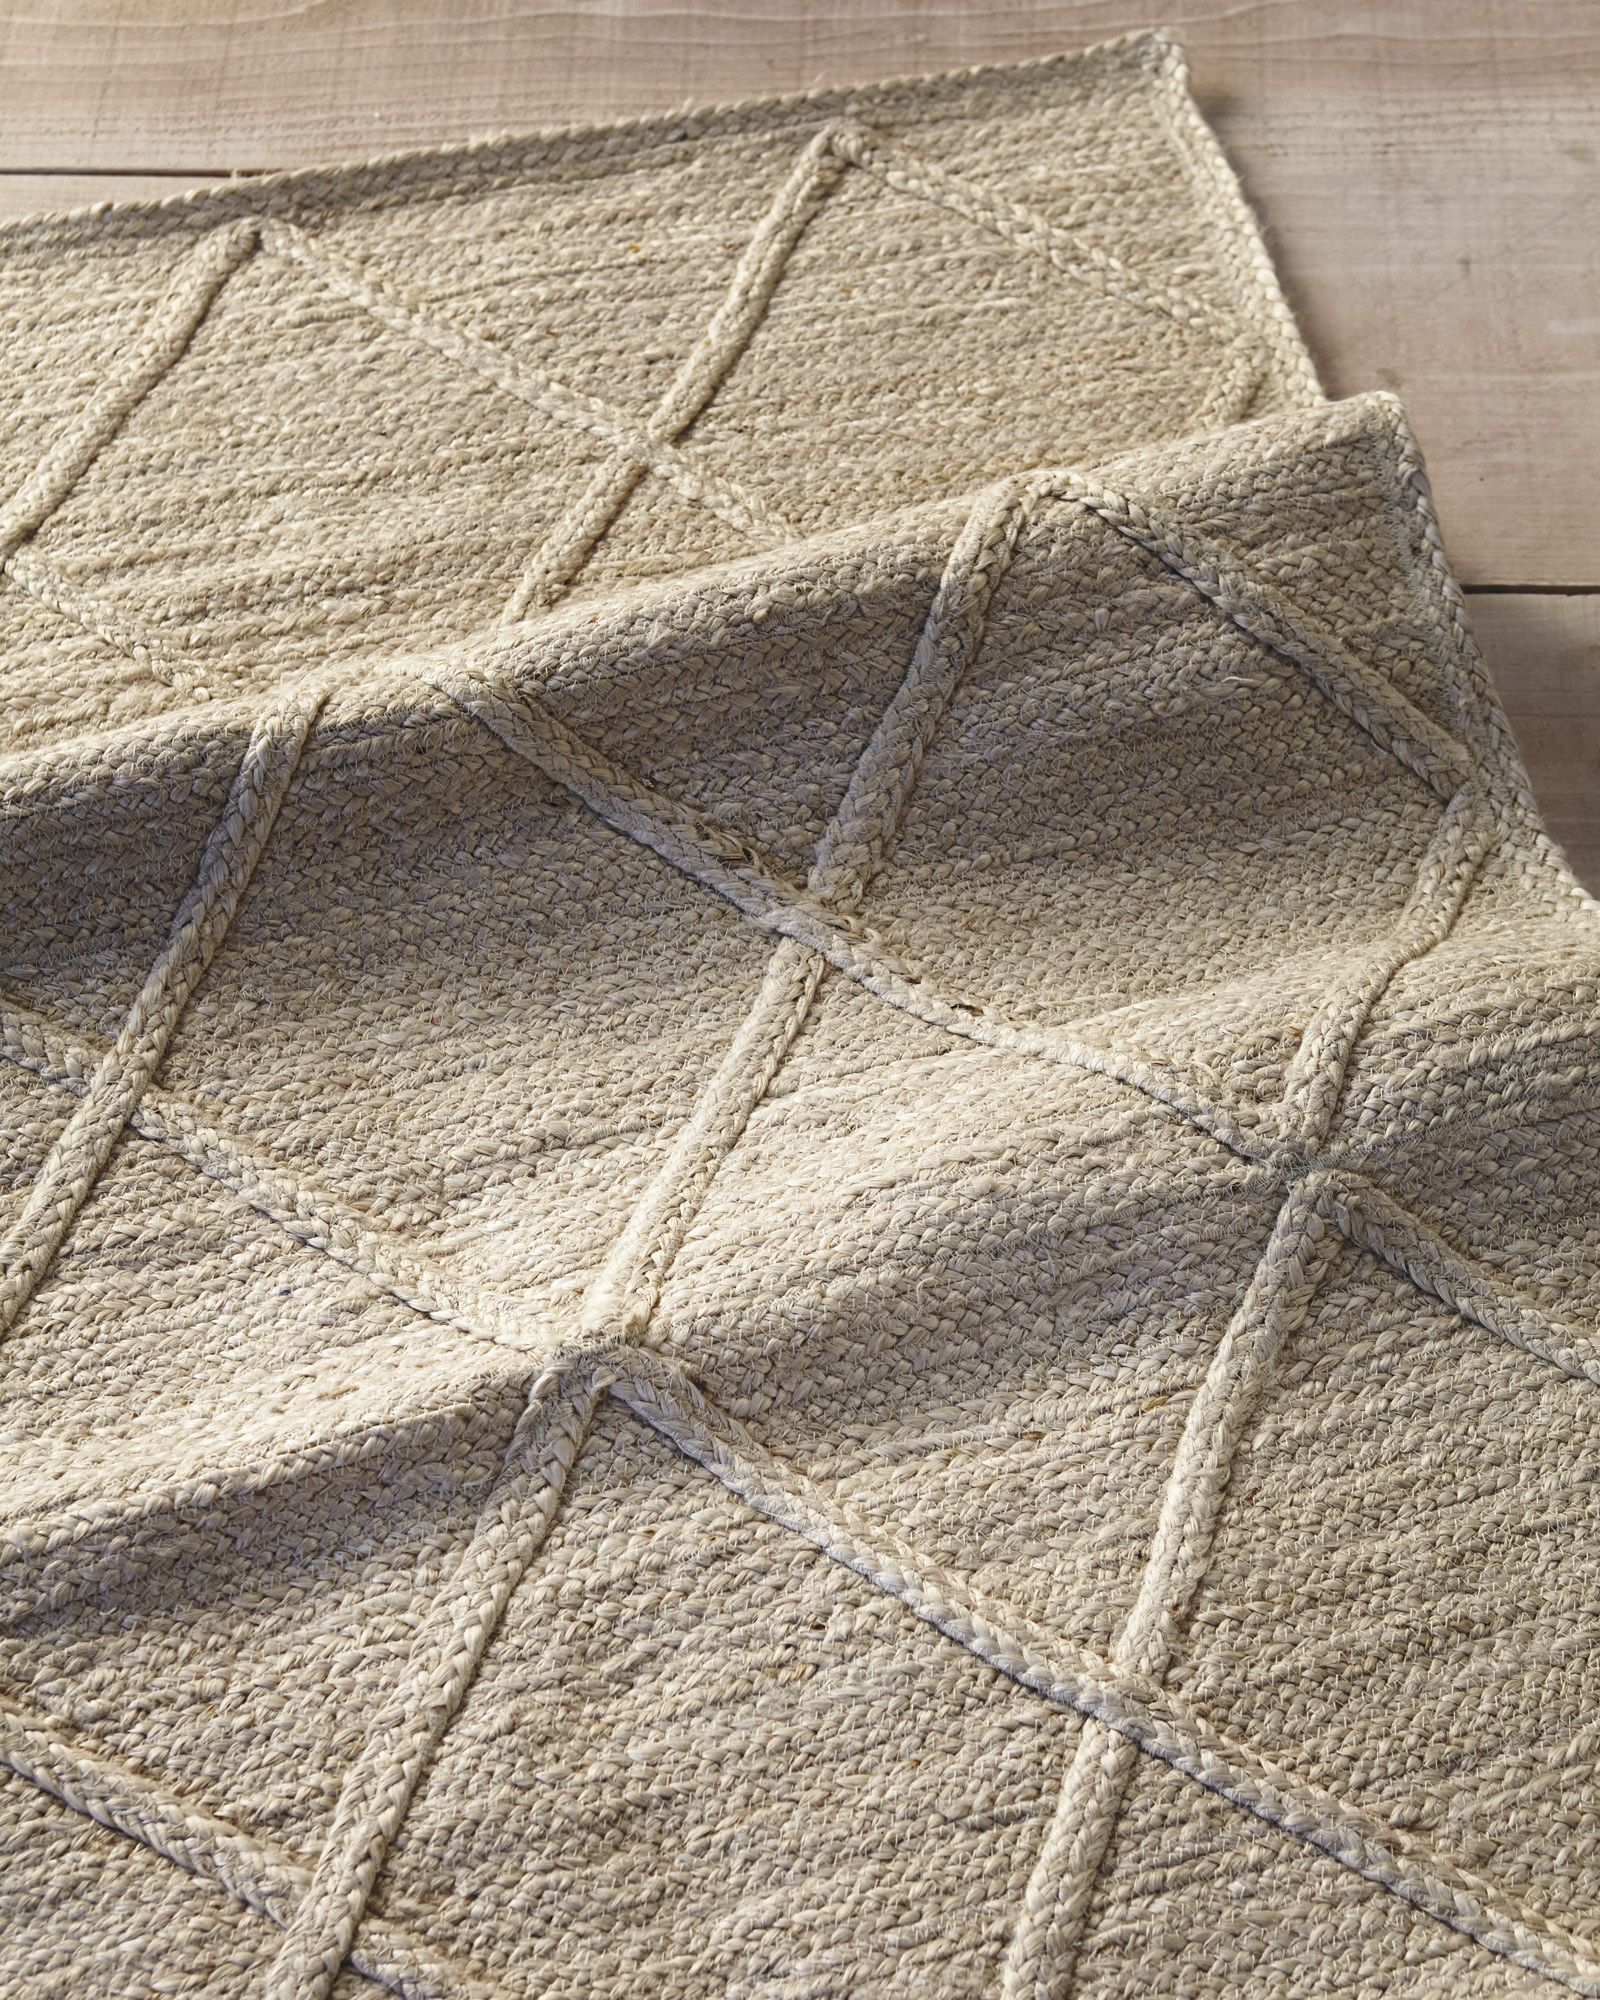 Diamond Jute Rug Serena Amp Lily 5x7 Rug Is 395 Retail